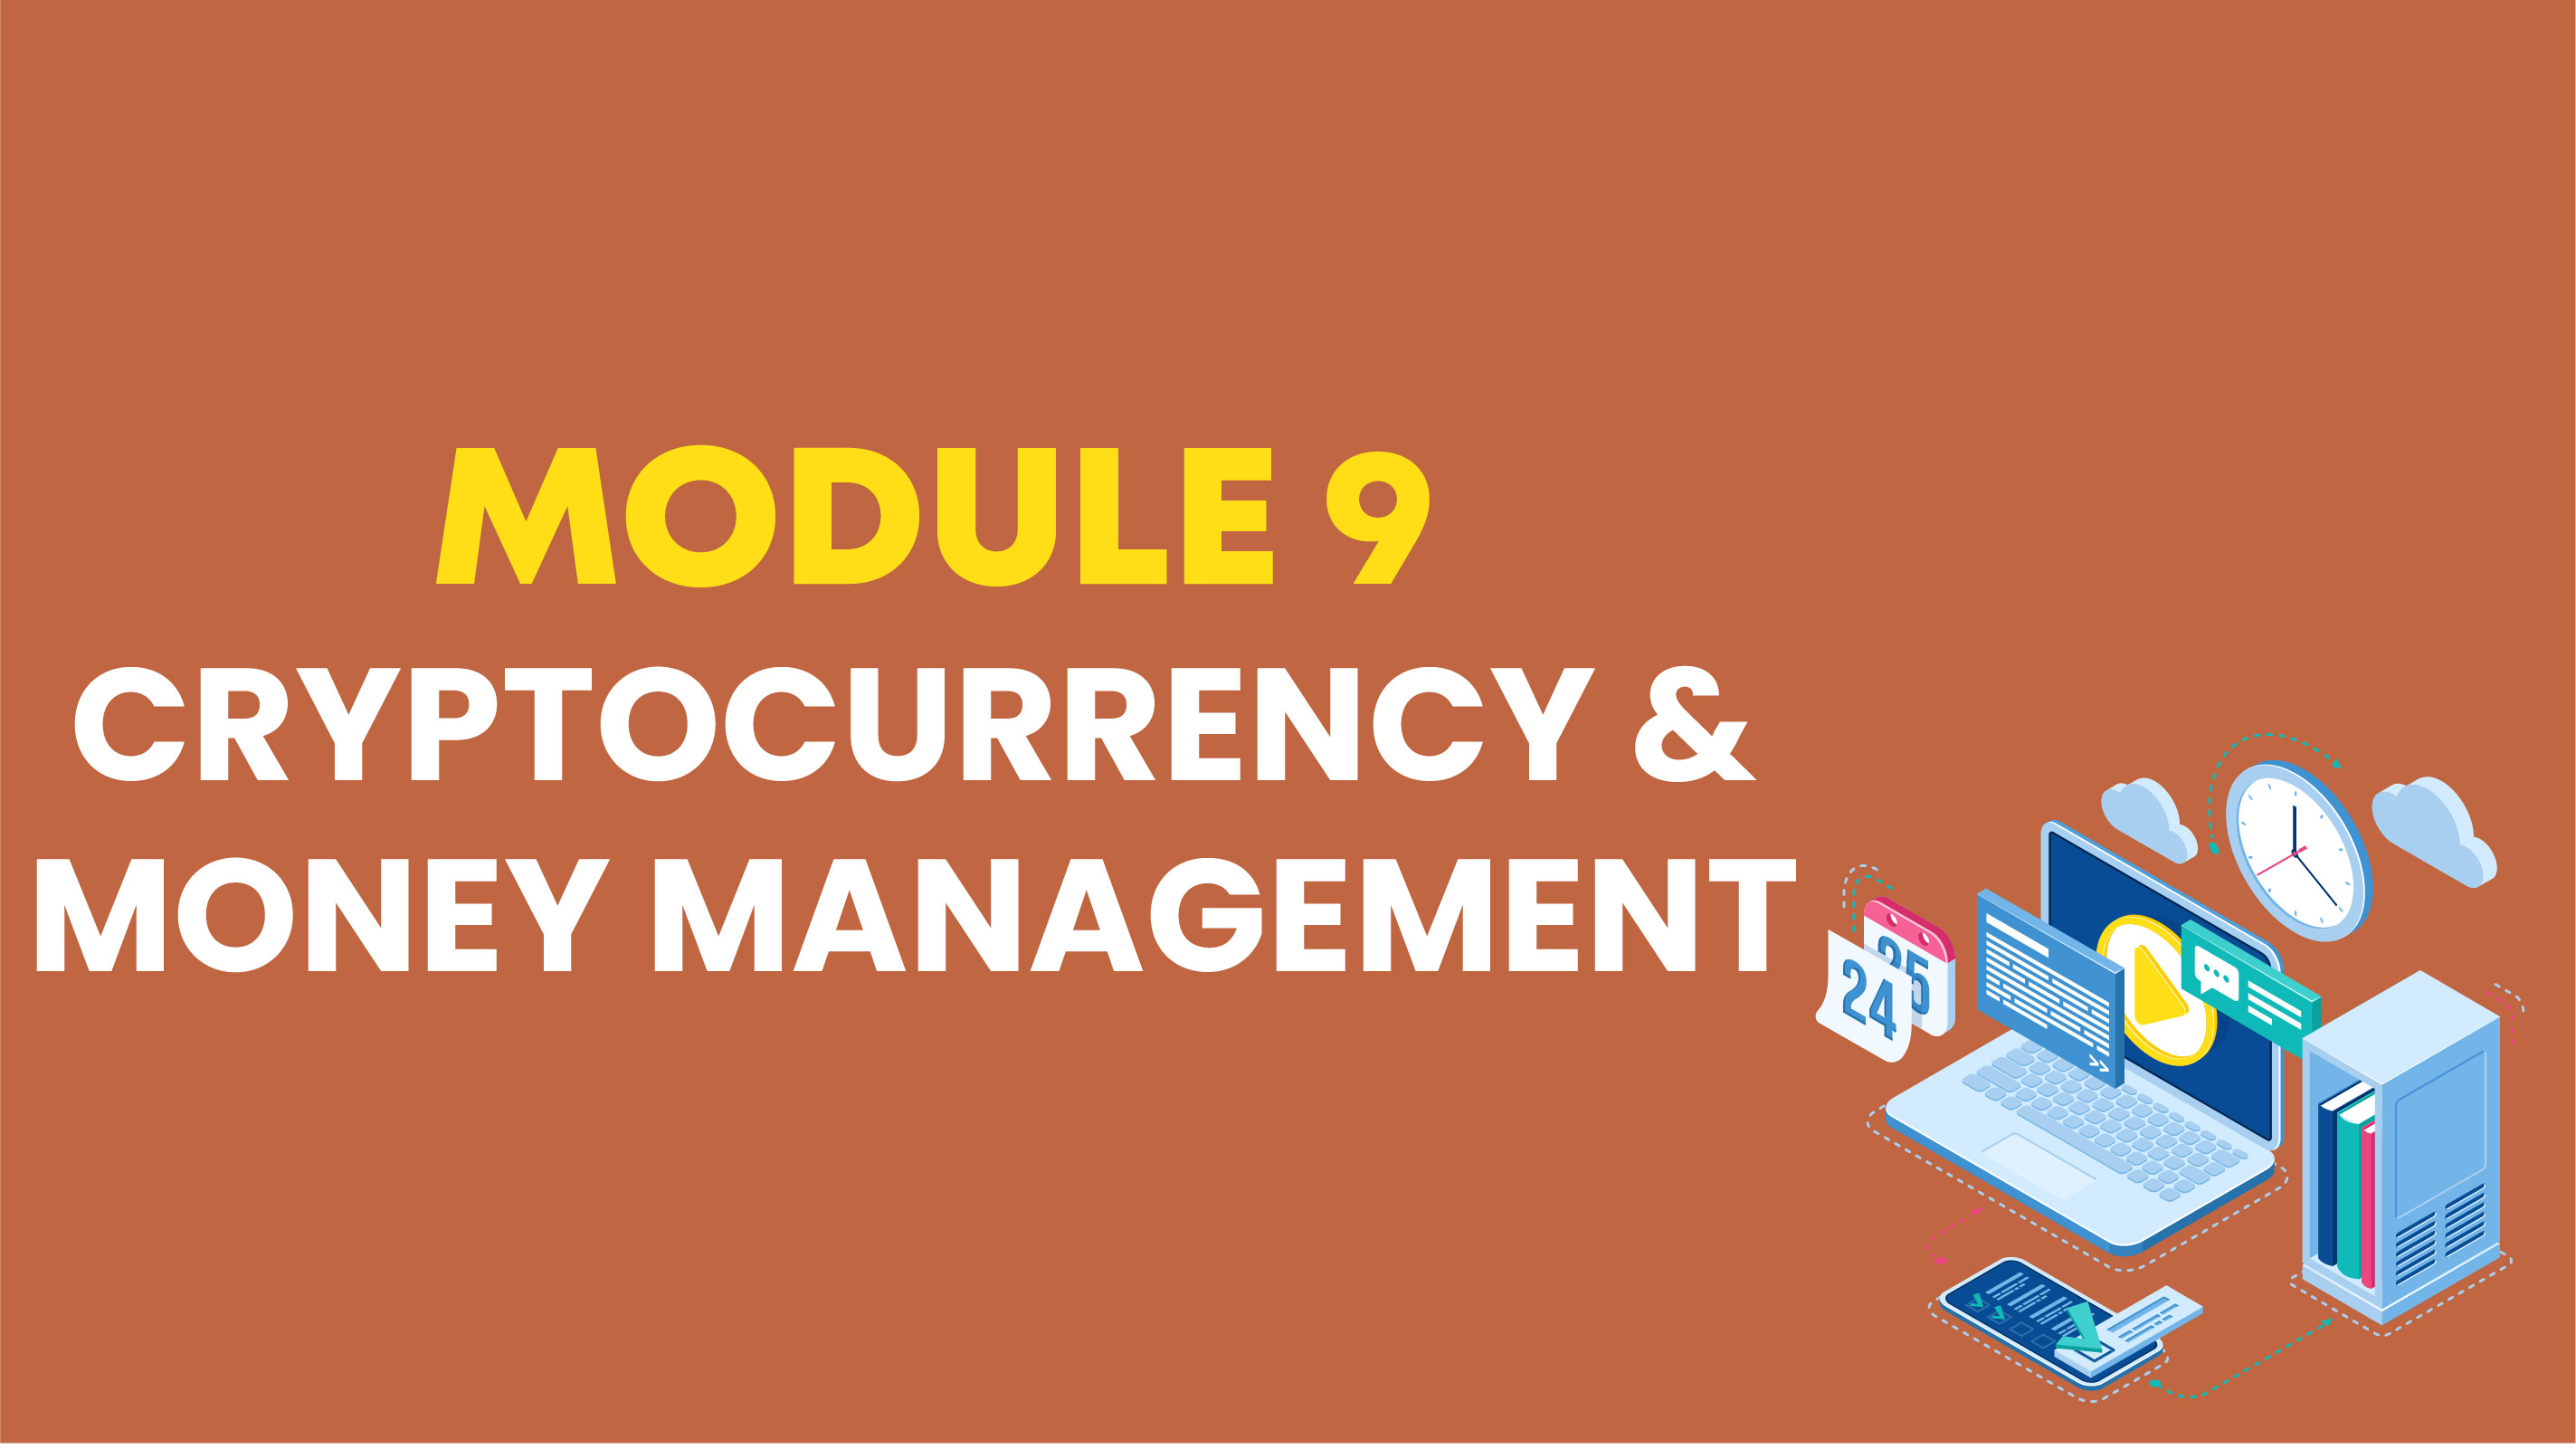 MODULE 9: CRYPTOCURRENCY & MONEY MANAGEMENT